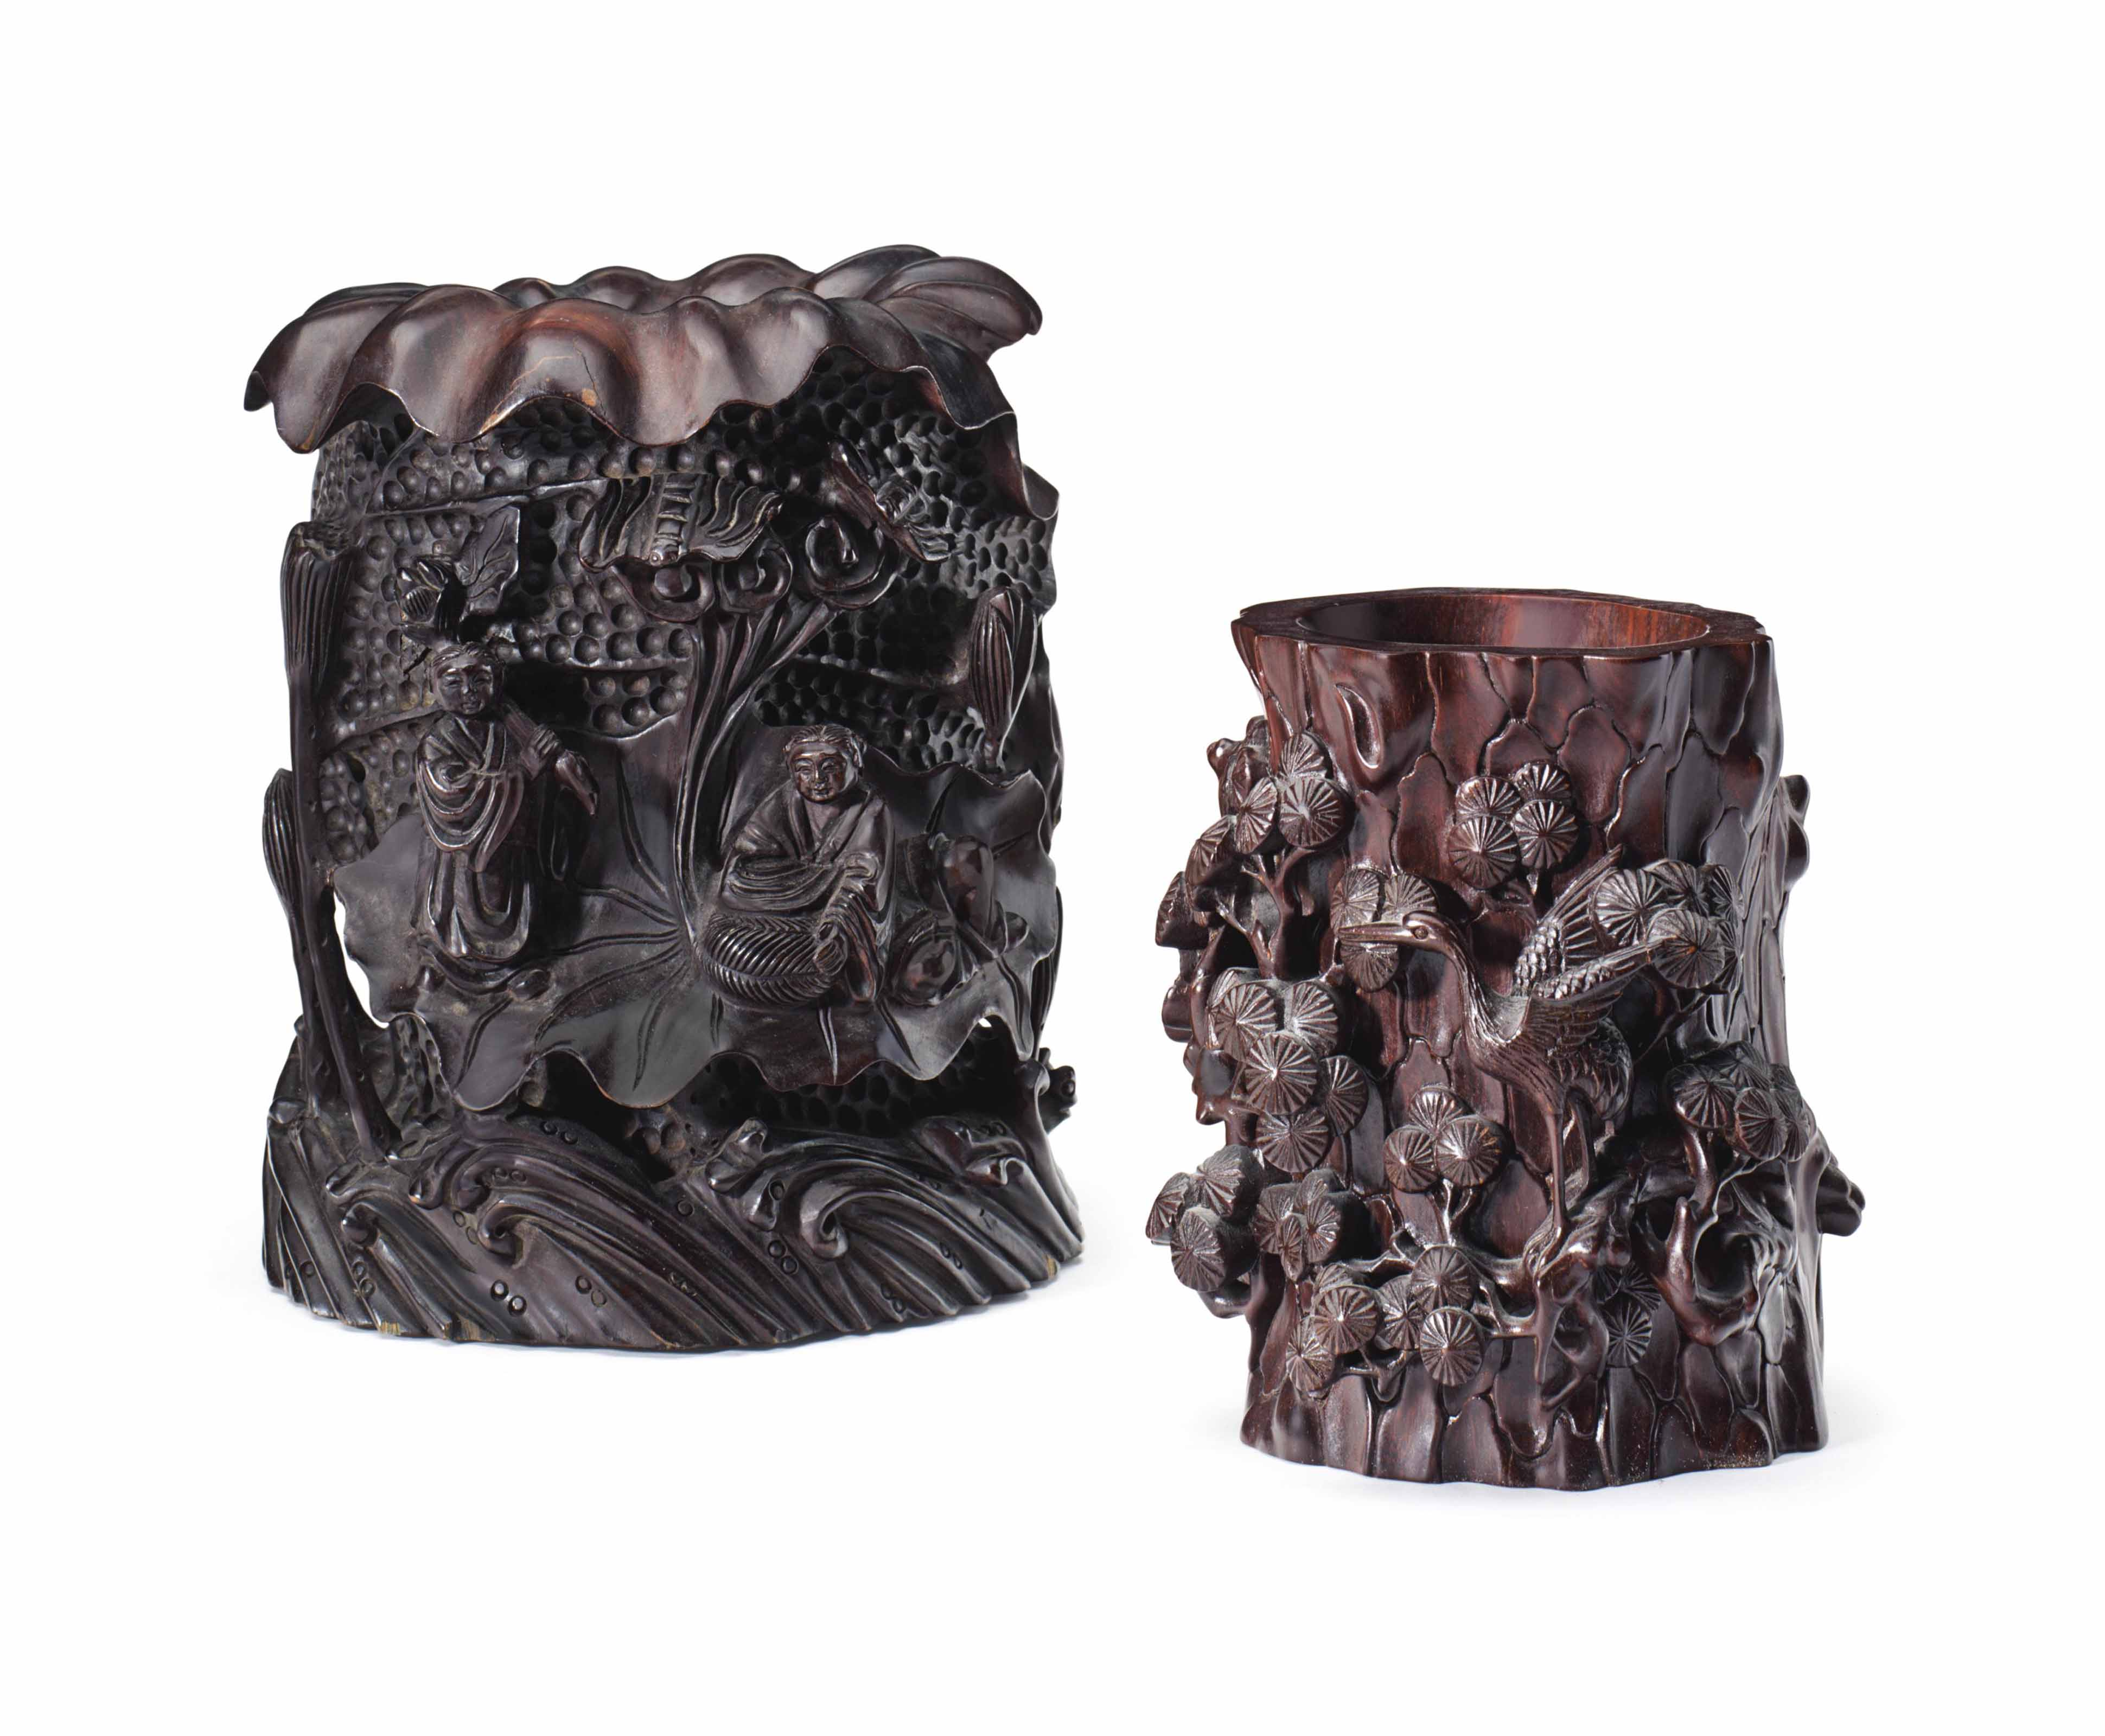 TWO CHINESE CARVED HARDWOOD BR